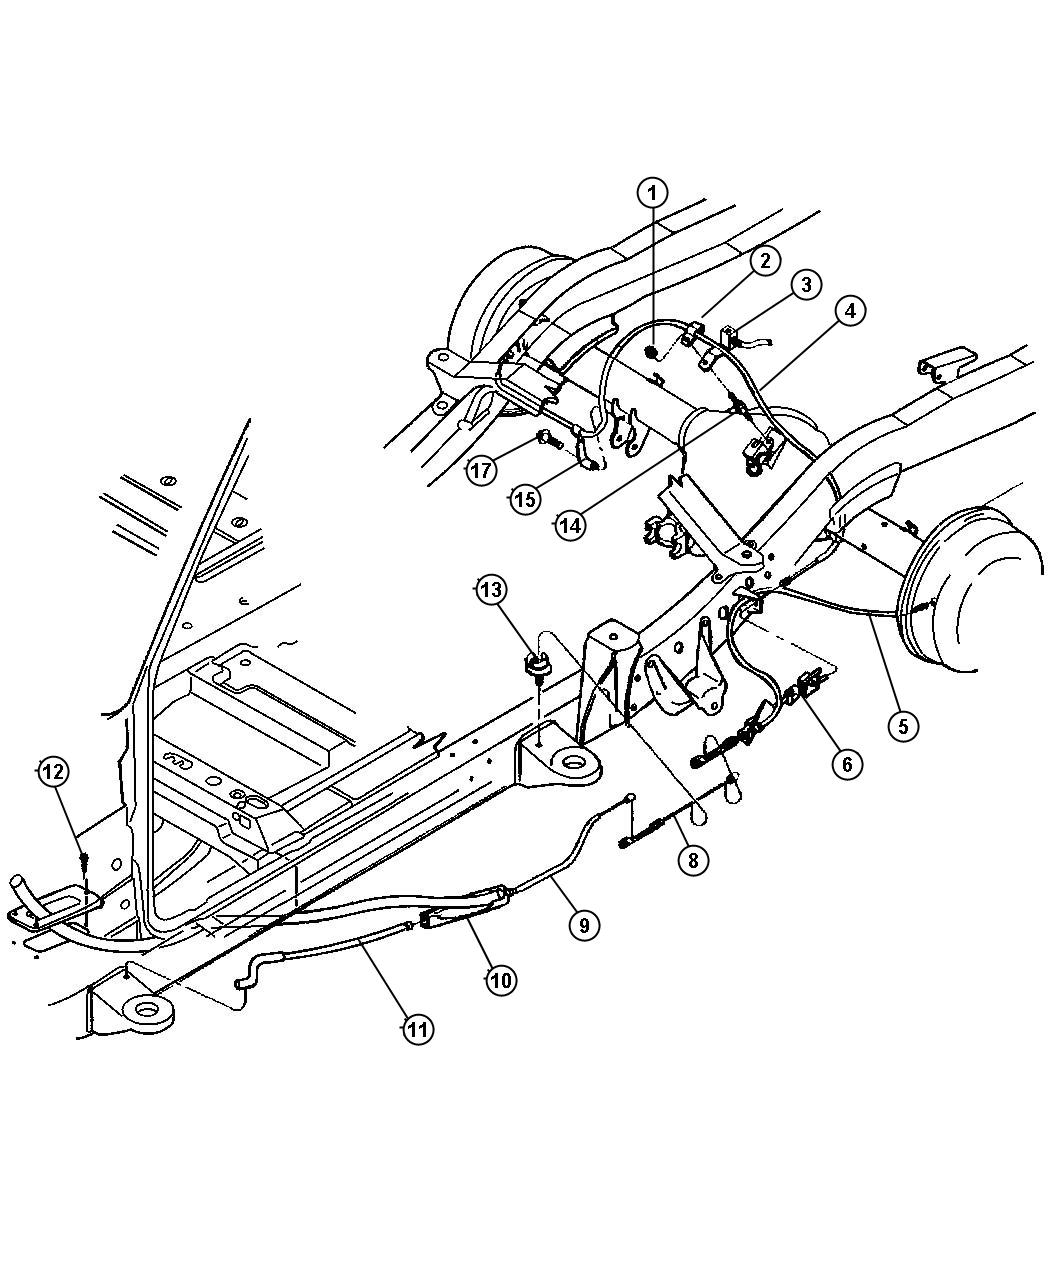 Dodge Dakota Front Disc Brake Diagram on 2000 dodge durango electrical diagram